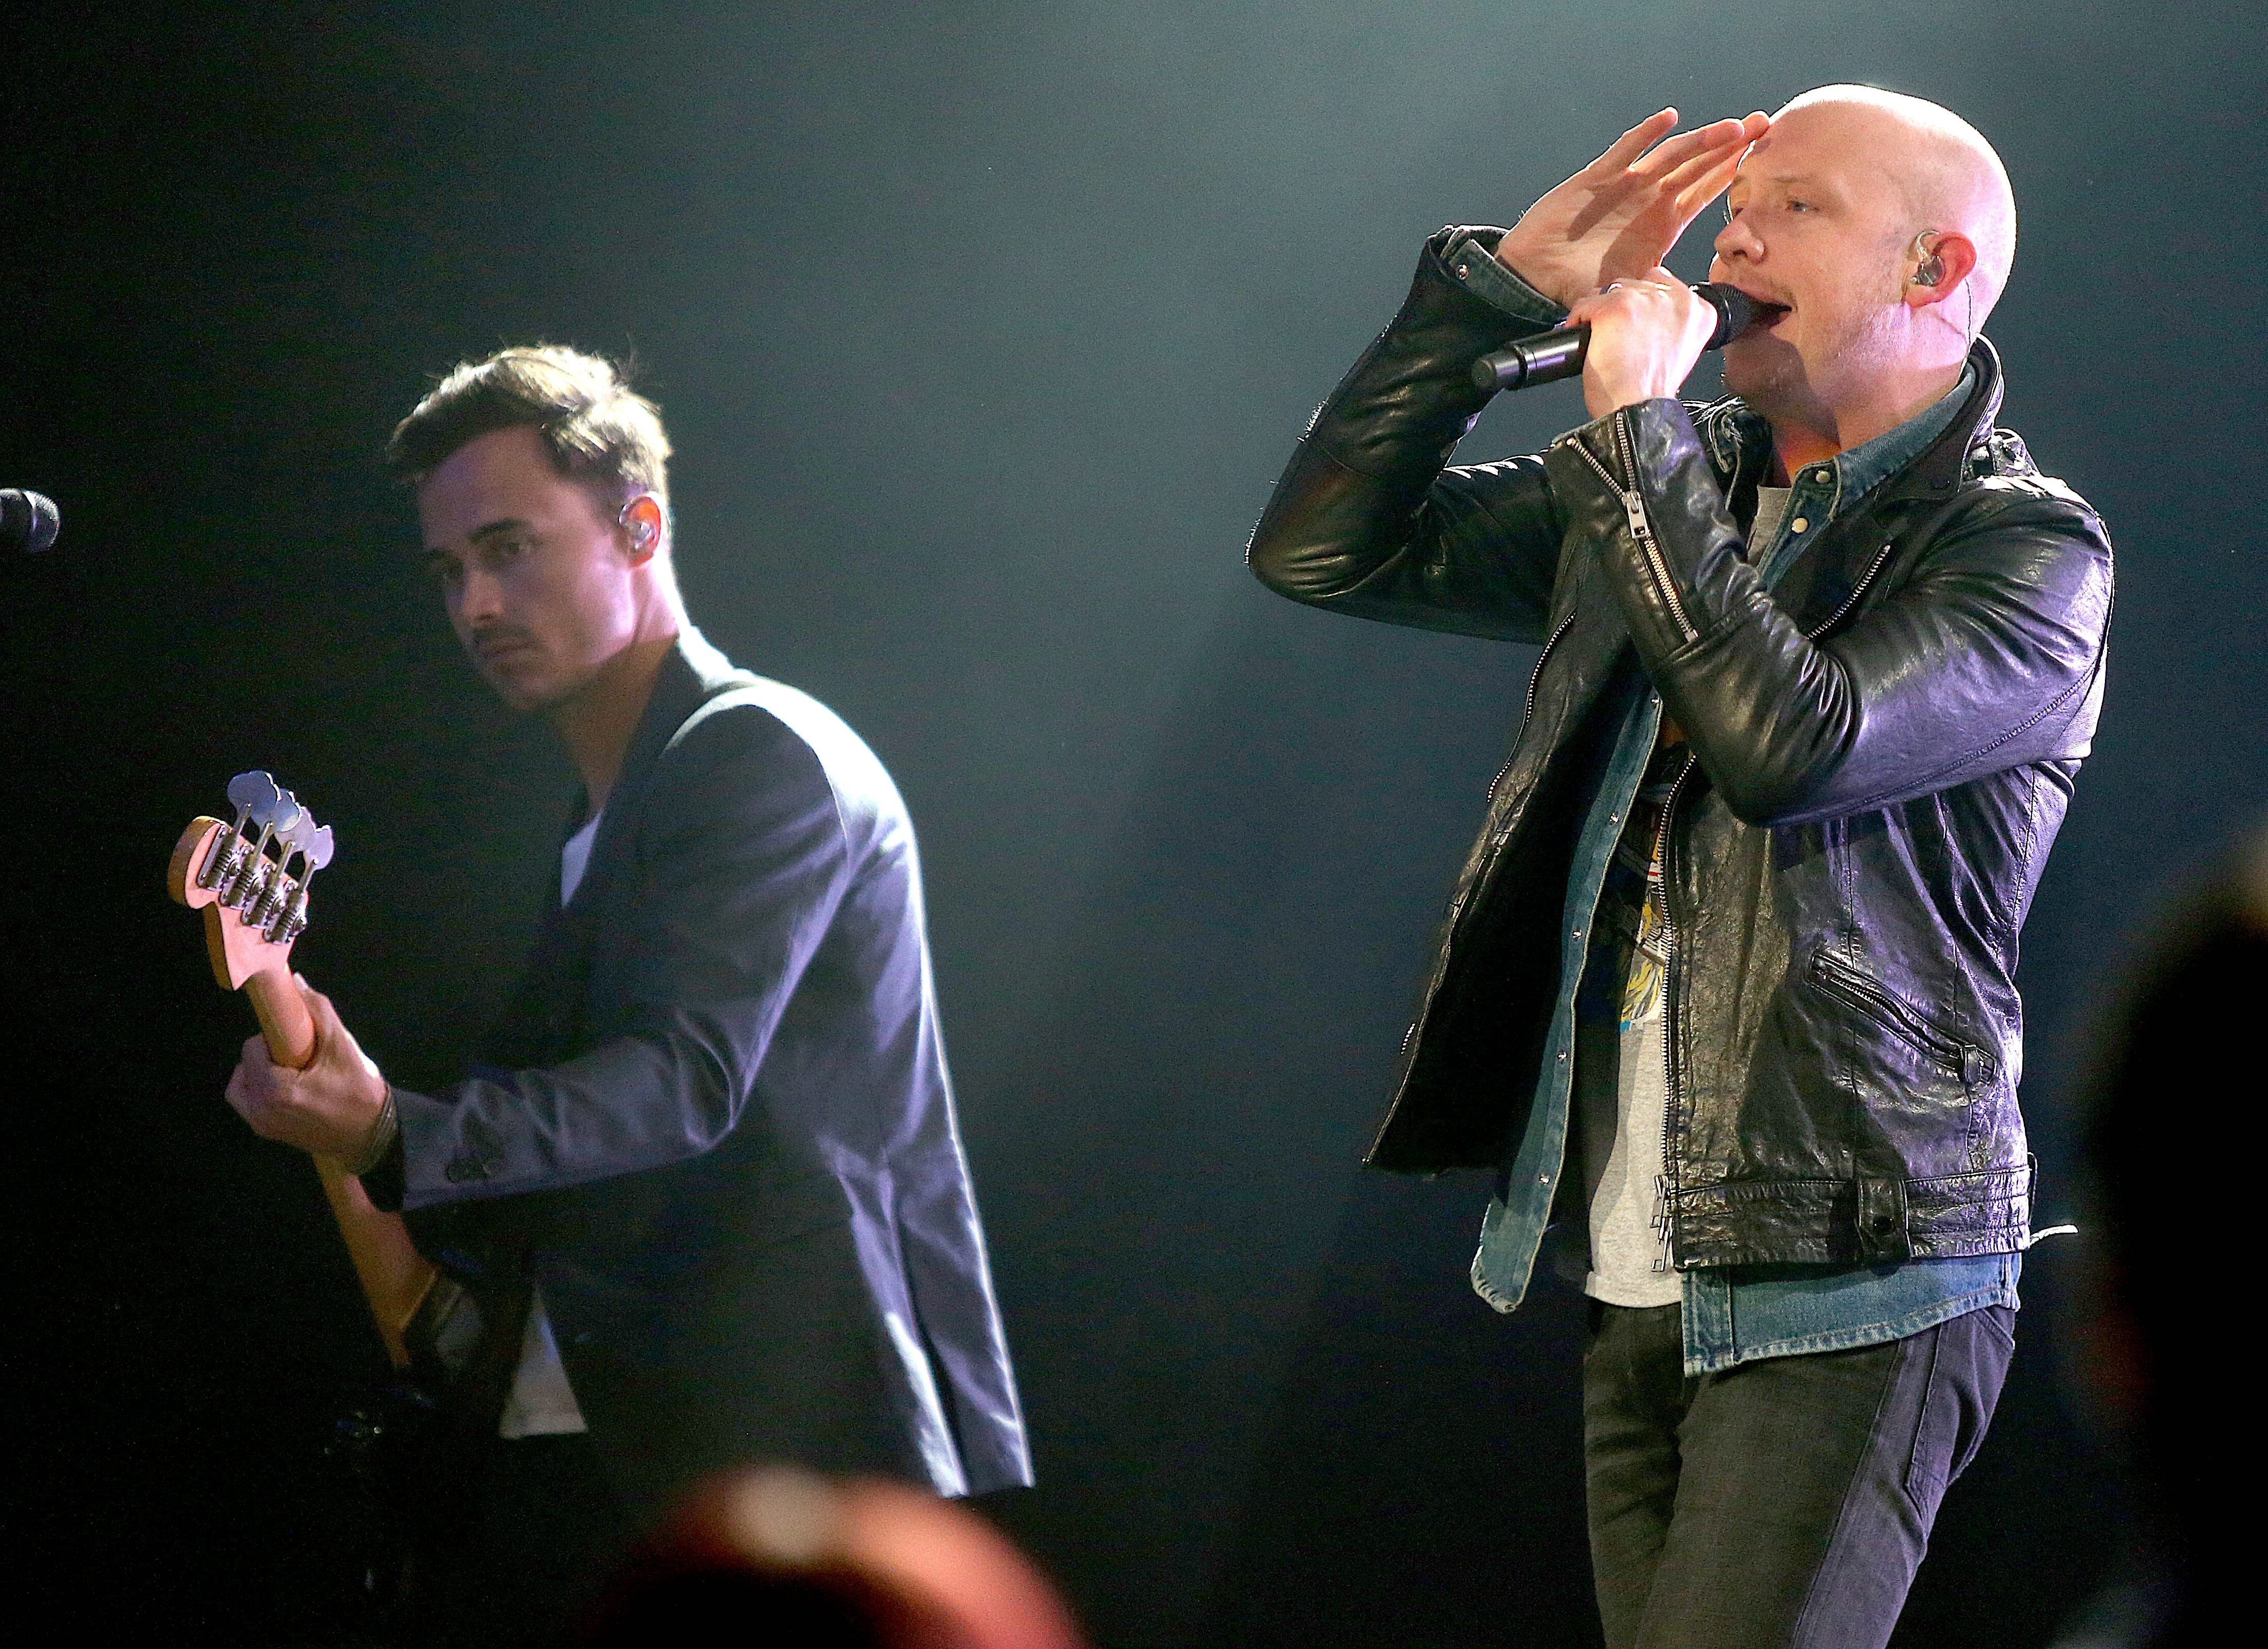 Lead singer Isaac Slade, right, performing with the Fray at Seneca Niagara Casino Events Center on Oct. 25.